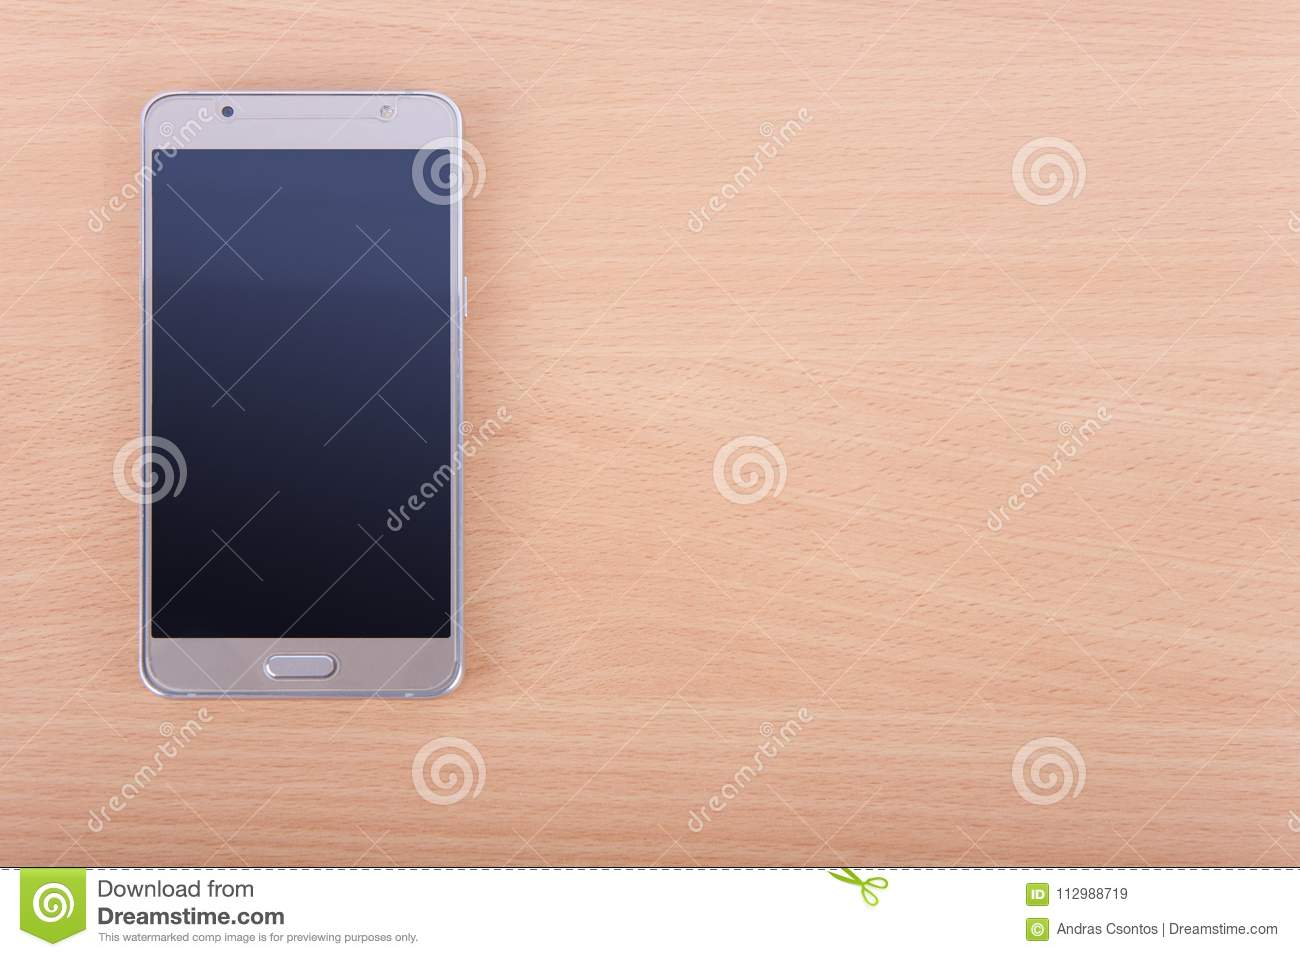 Smartphone on a wooden office table.